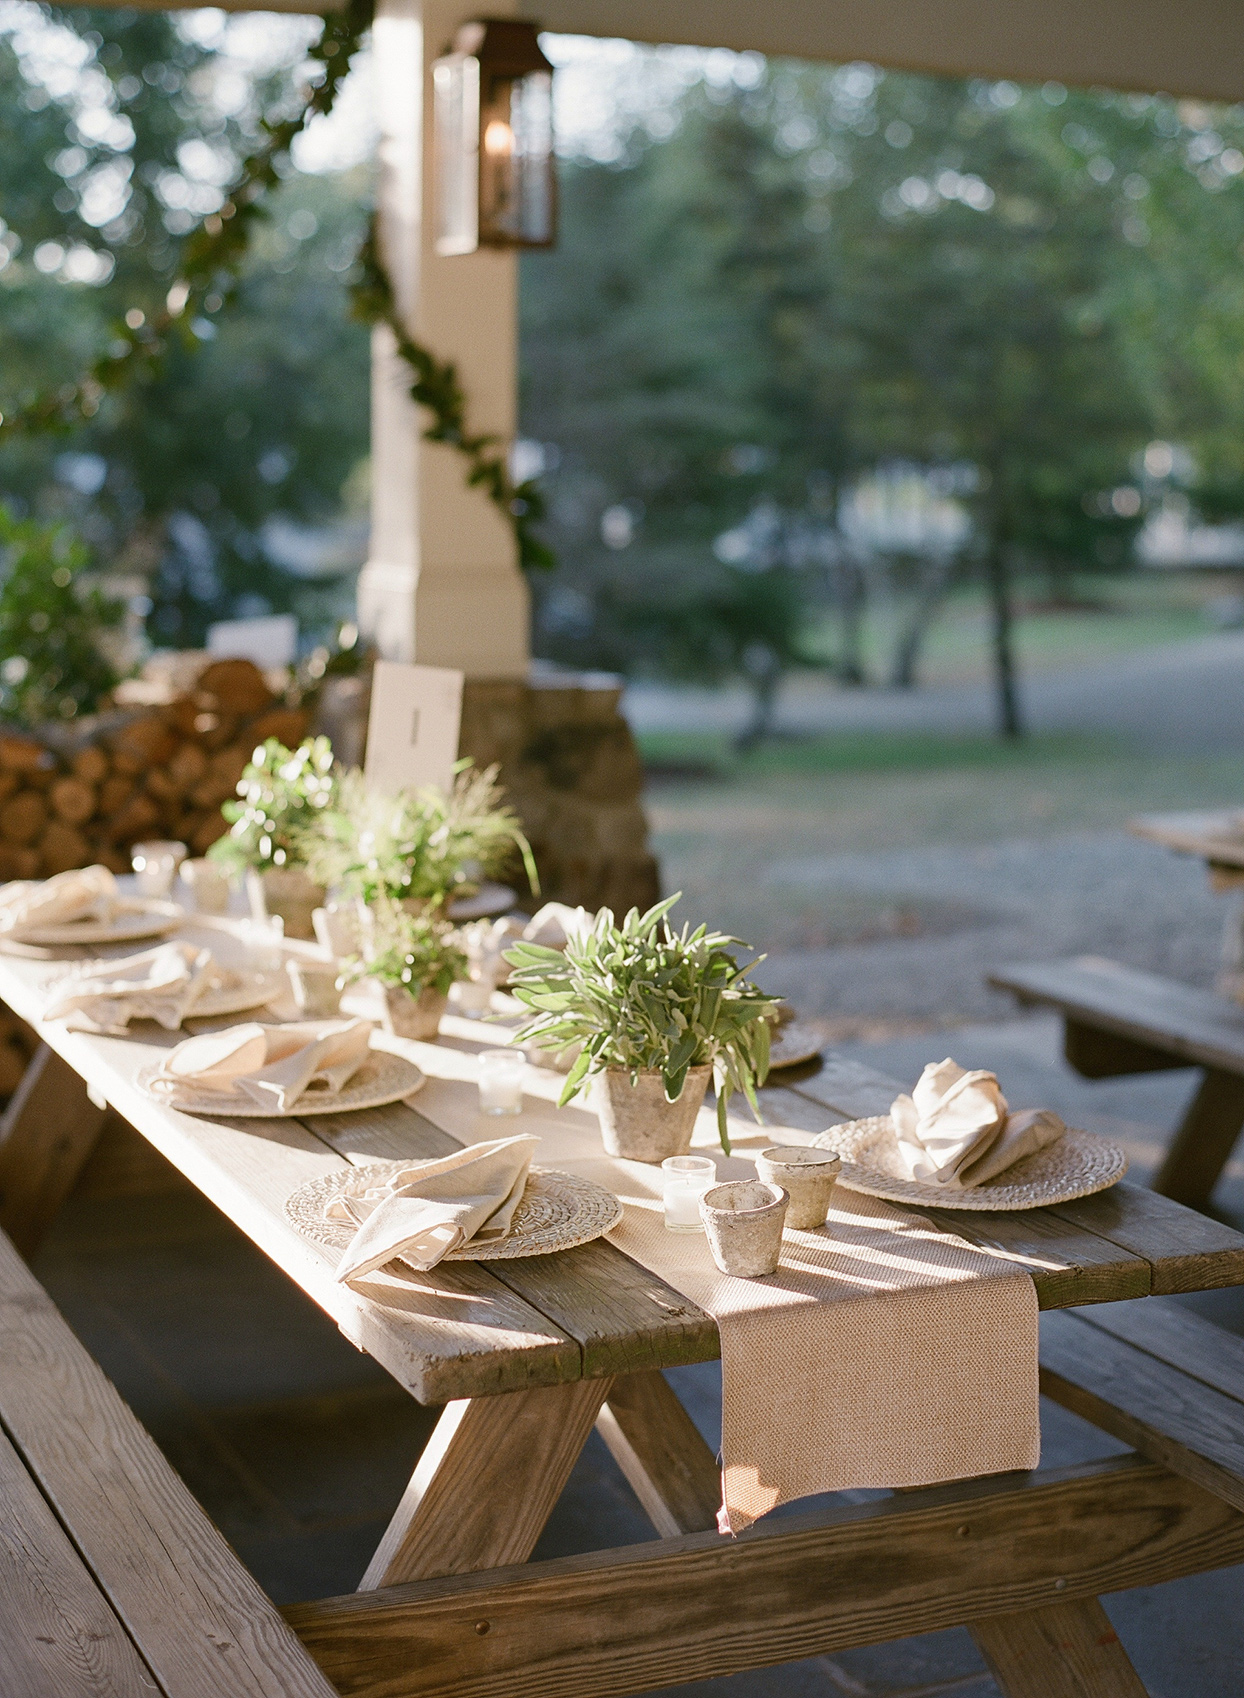 picnic dinner tables set with neutral tones and plant centerpieces for rehearsal dinner